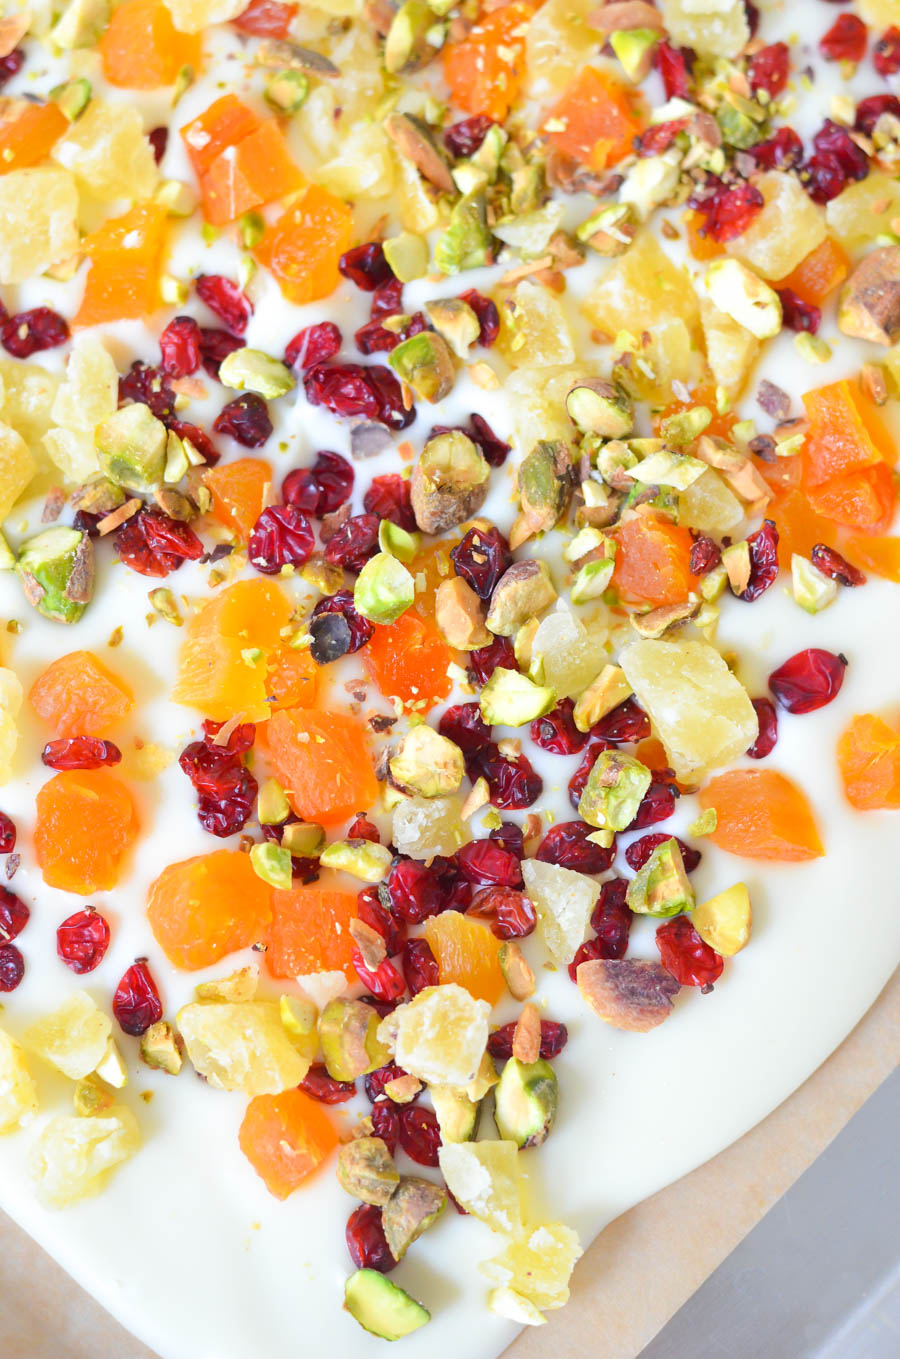 White Chocolate Bark w. Dried Fruit + Nuts | Luci's Morsels